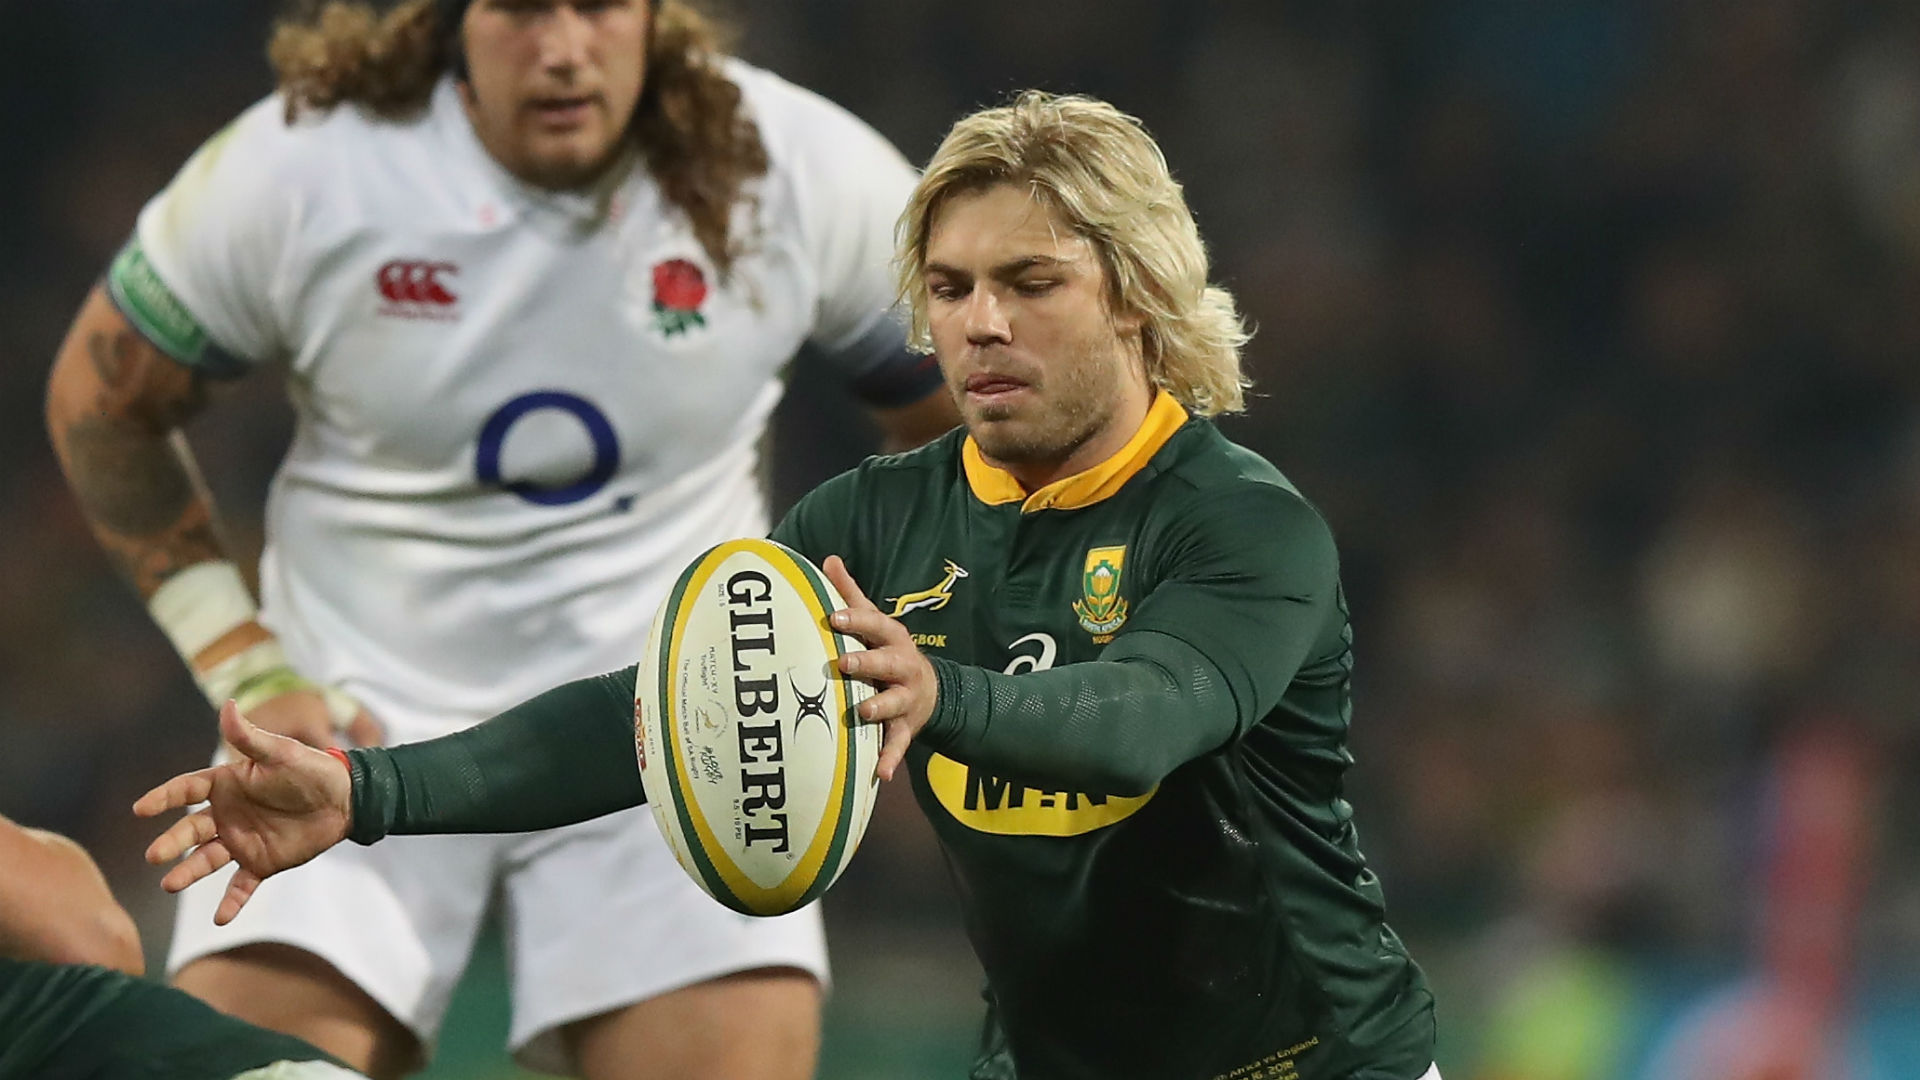 Overseas players key to South Africa resurgence, says Habana